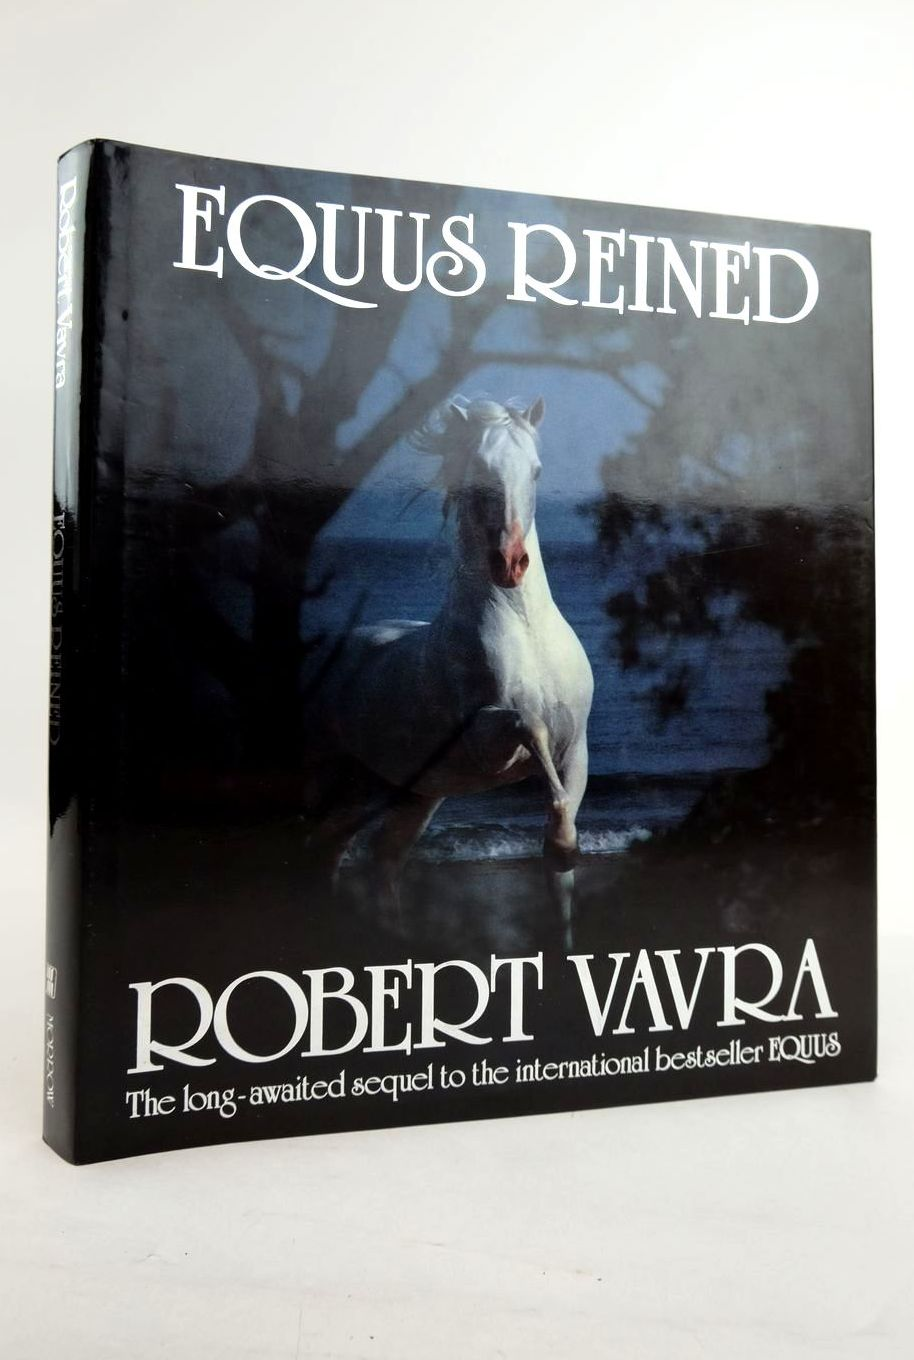 Photo of EQUUS REINED written by Vavra, Robert published by William Morrow & Company Inc (STOCK CODE: 1821225)  for sale by Stella & Rose's Books